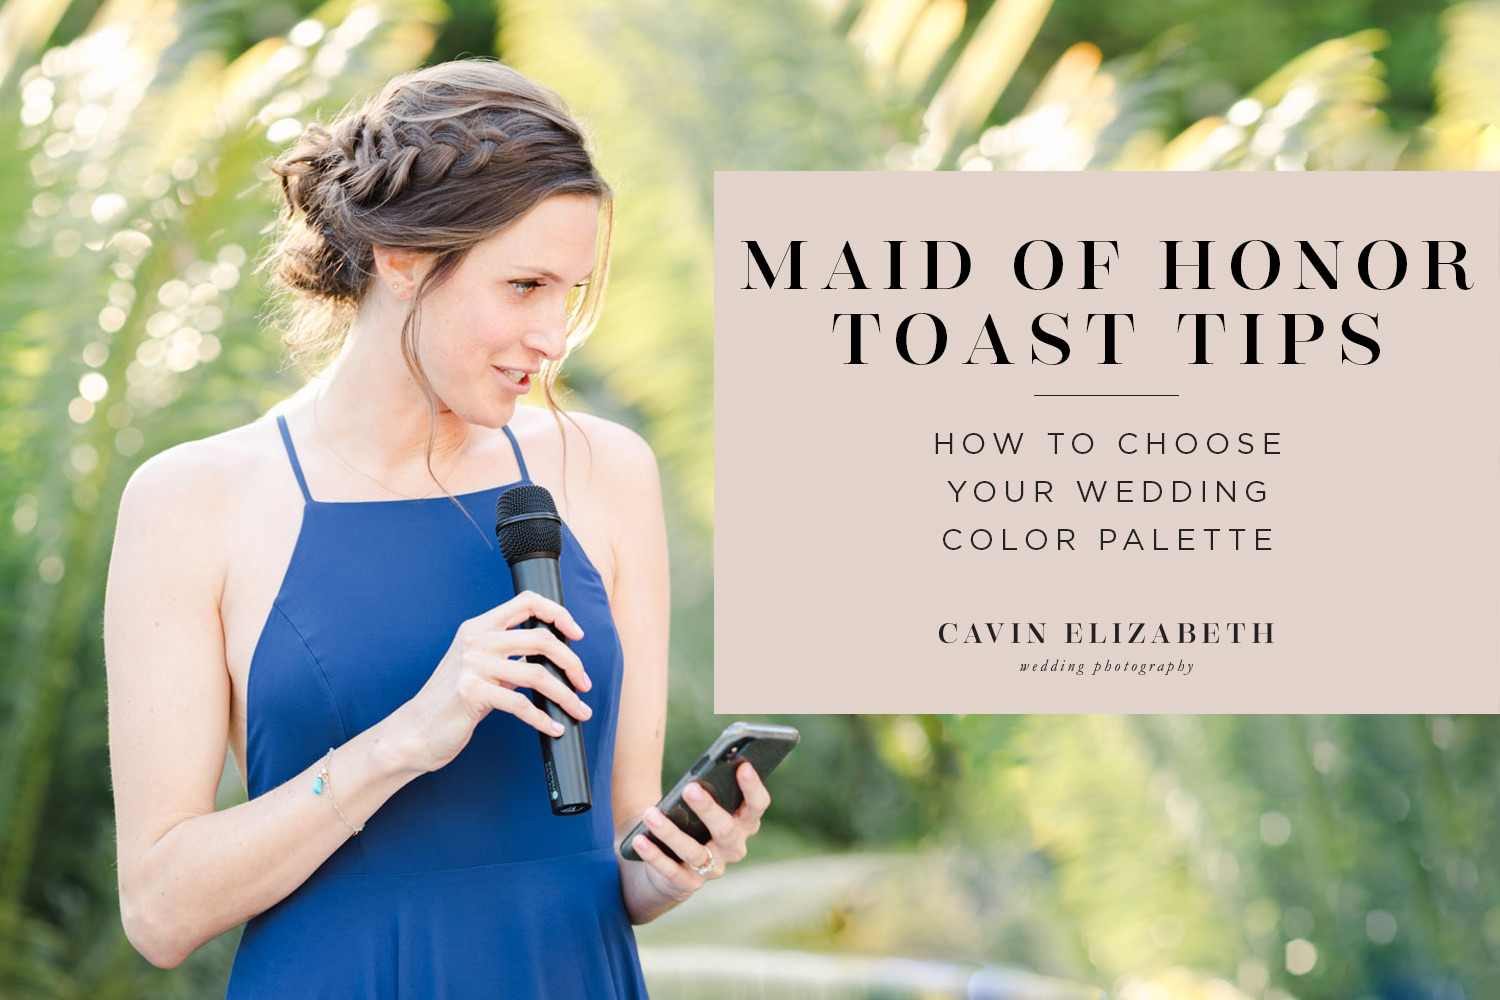 Maid of Honor Speech Tips for Giving a Great Toast